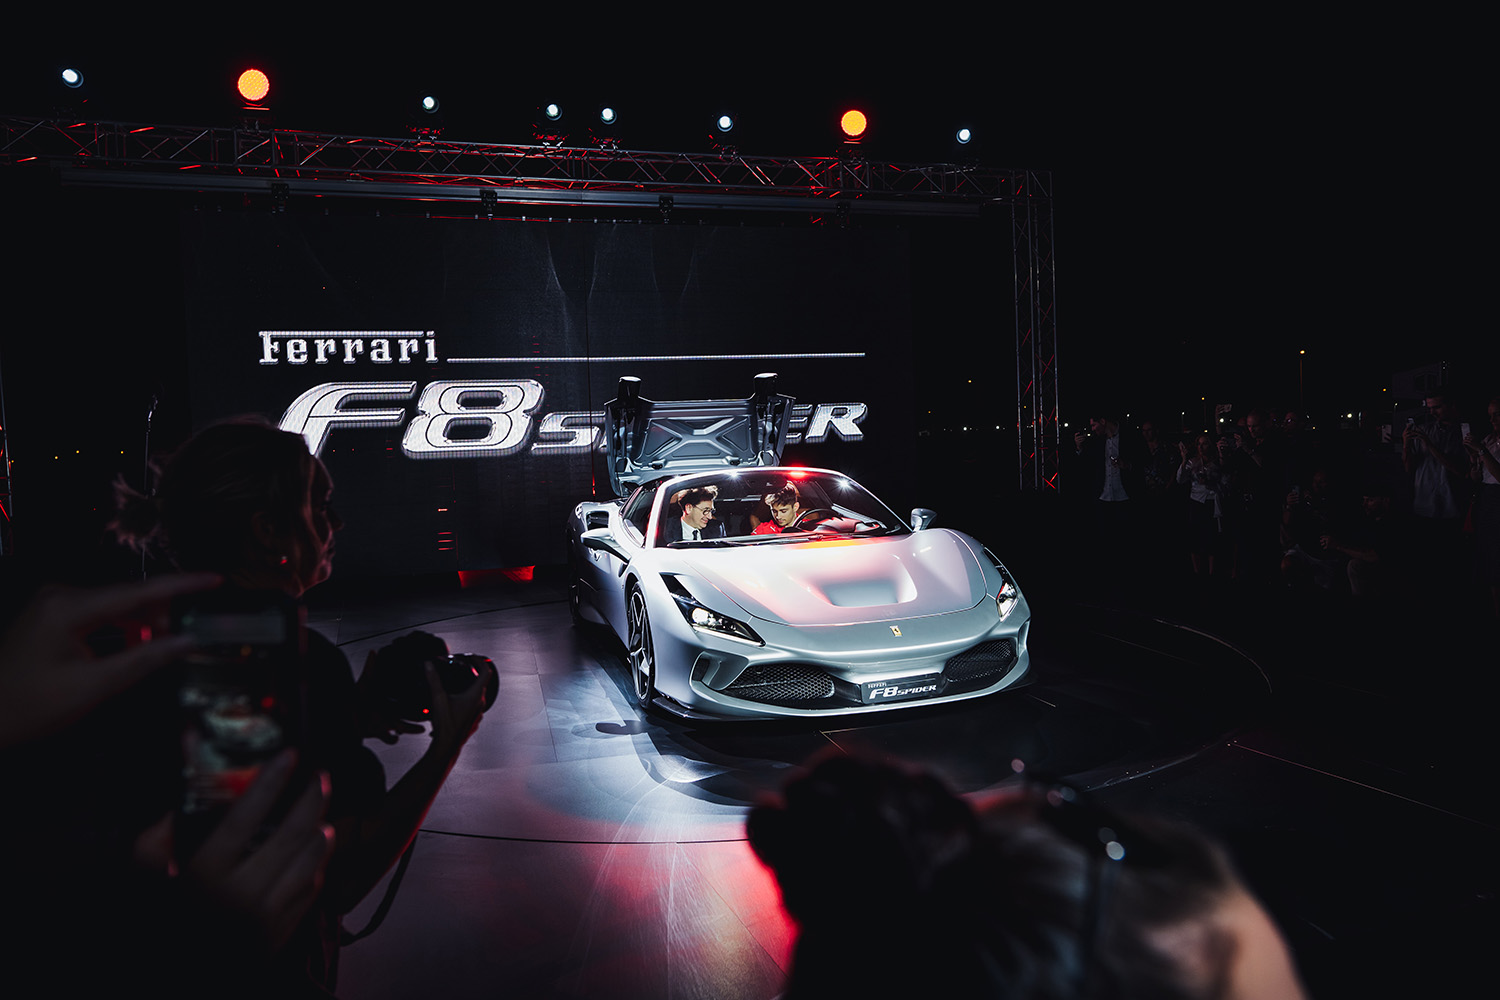 A First Look At Ferrari's F8 Spider